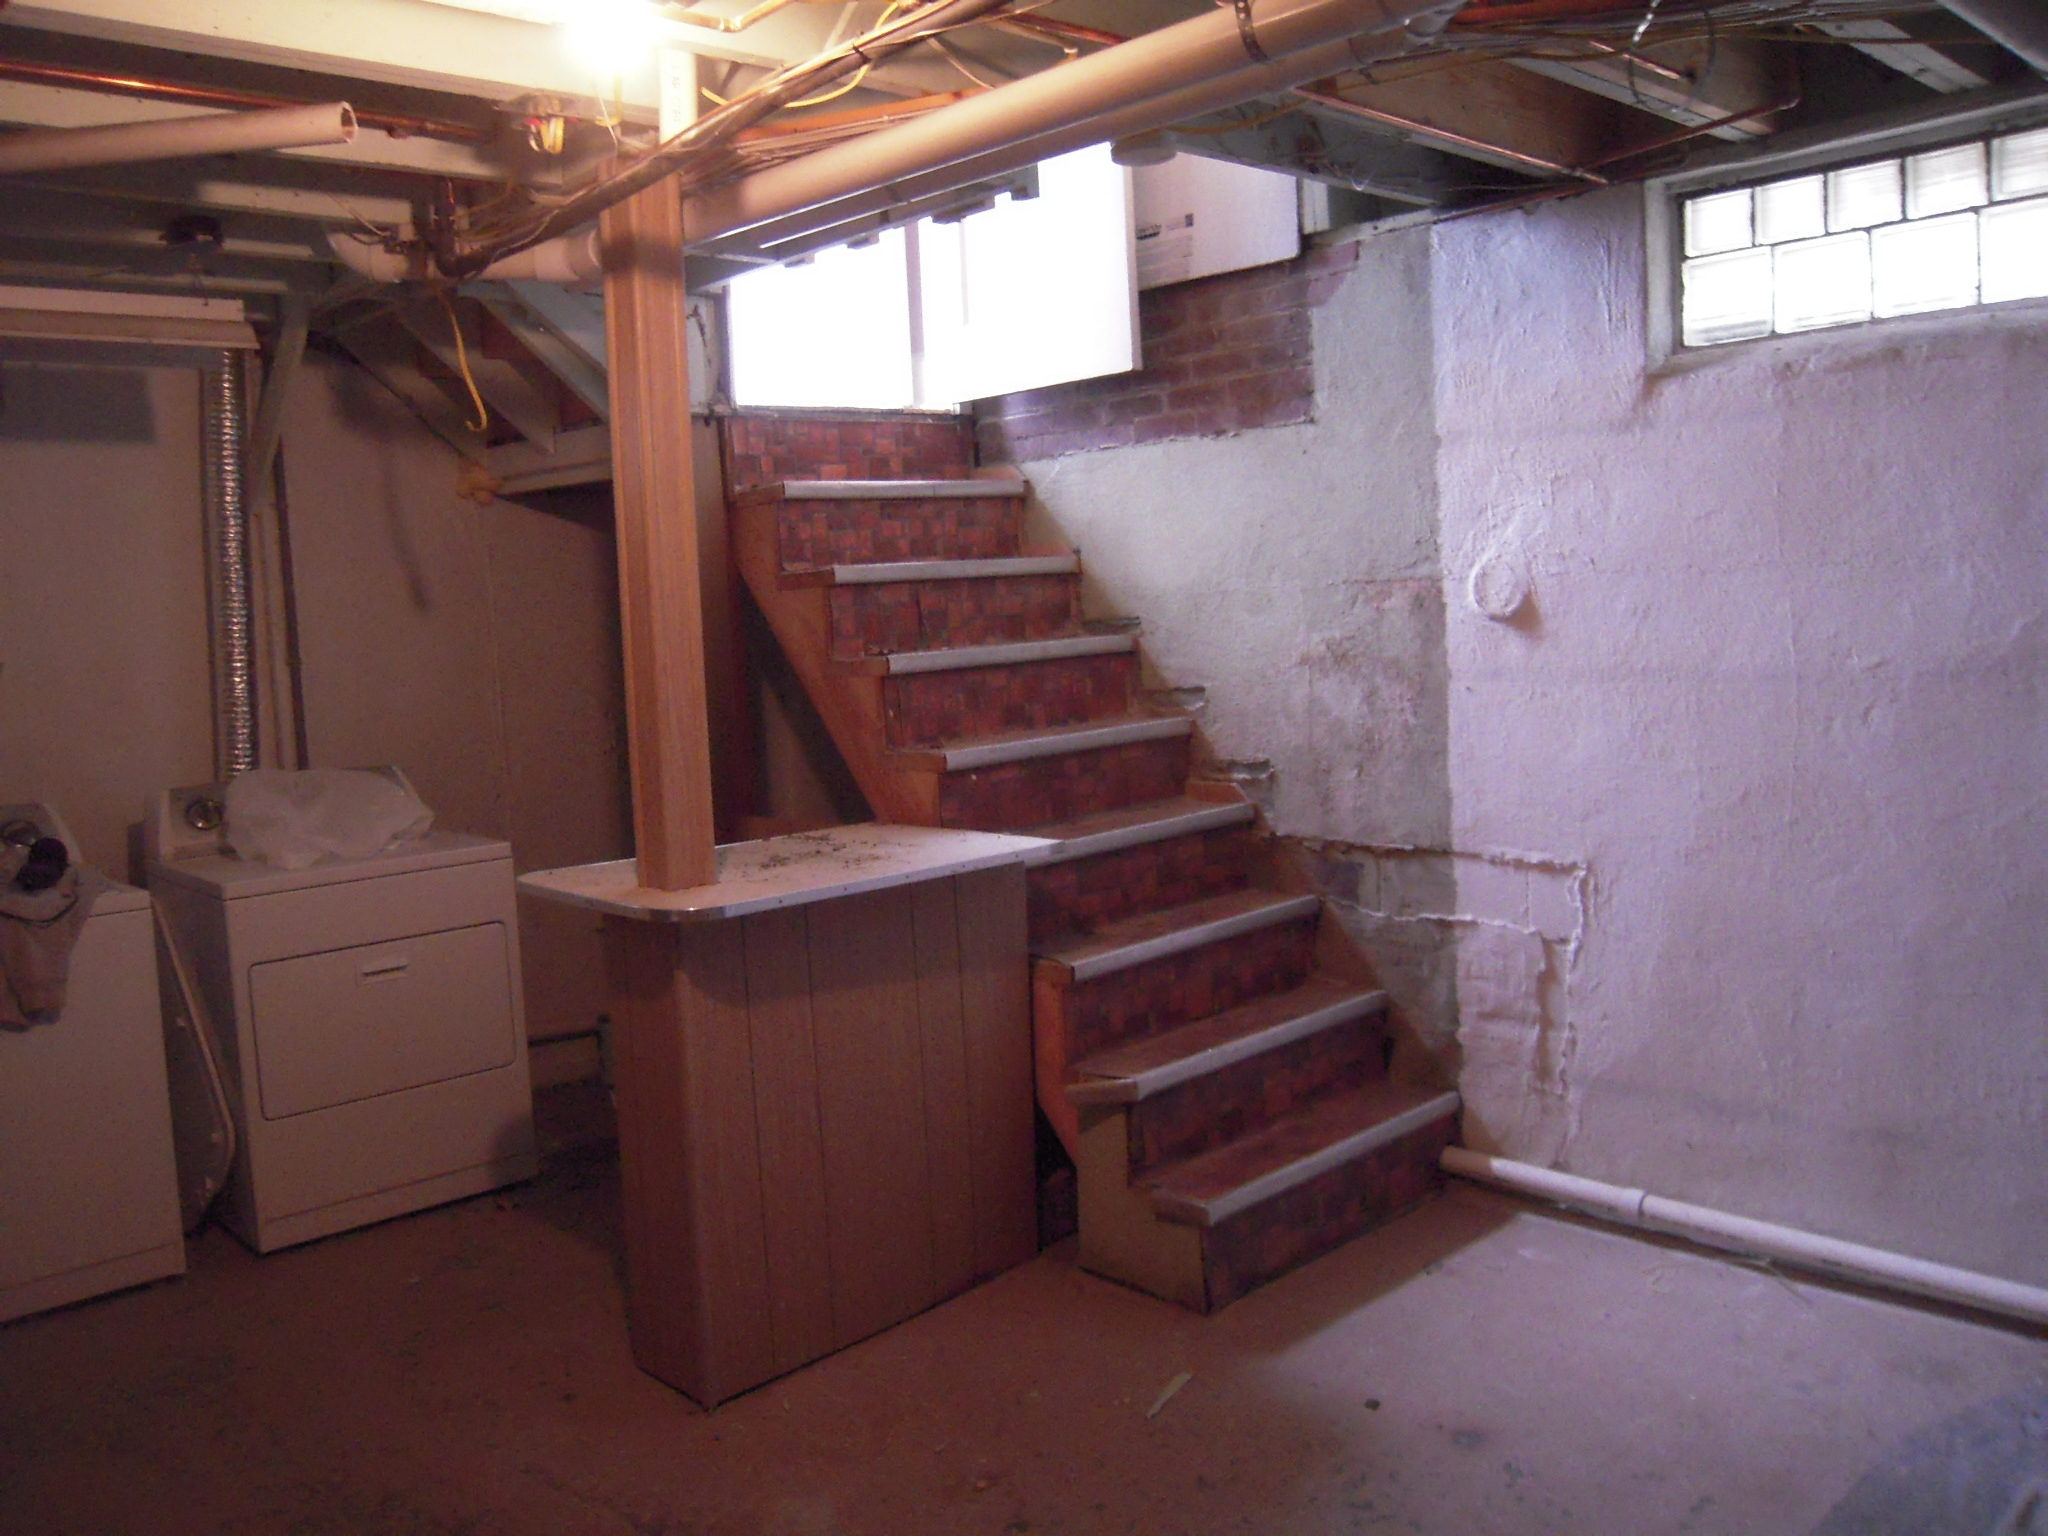 Basement Stairs Adventures In Remodeling   Replacing Old Basement Stairs   Stair Railing   Staircase Remodel   Staircase Railings   Stair Tread   Stair Risers